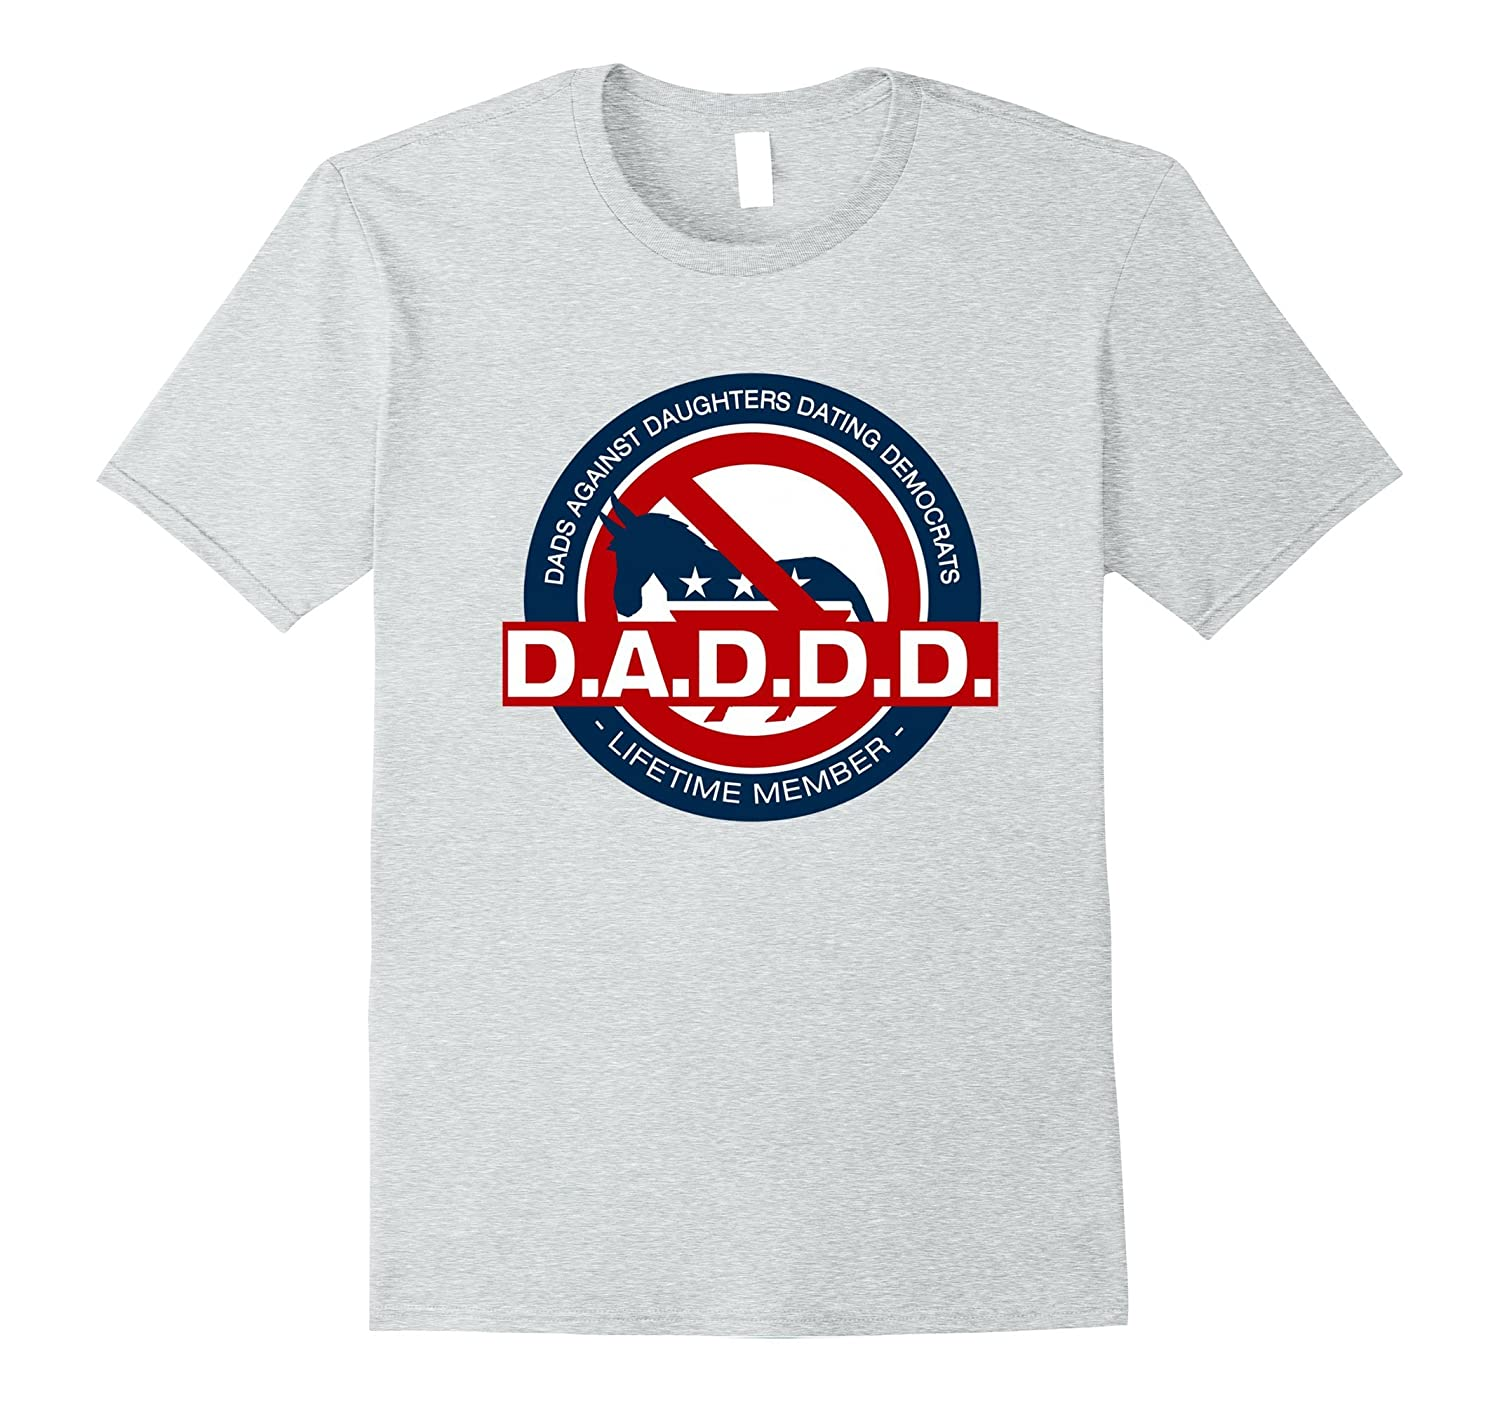 dads against daughters dating democrats dating references